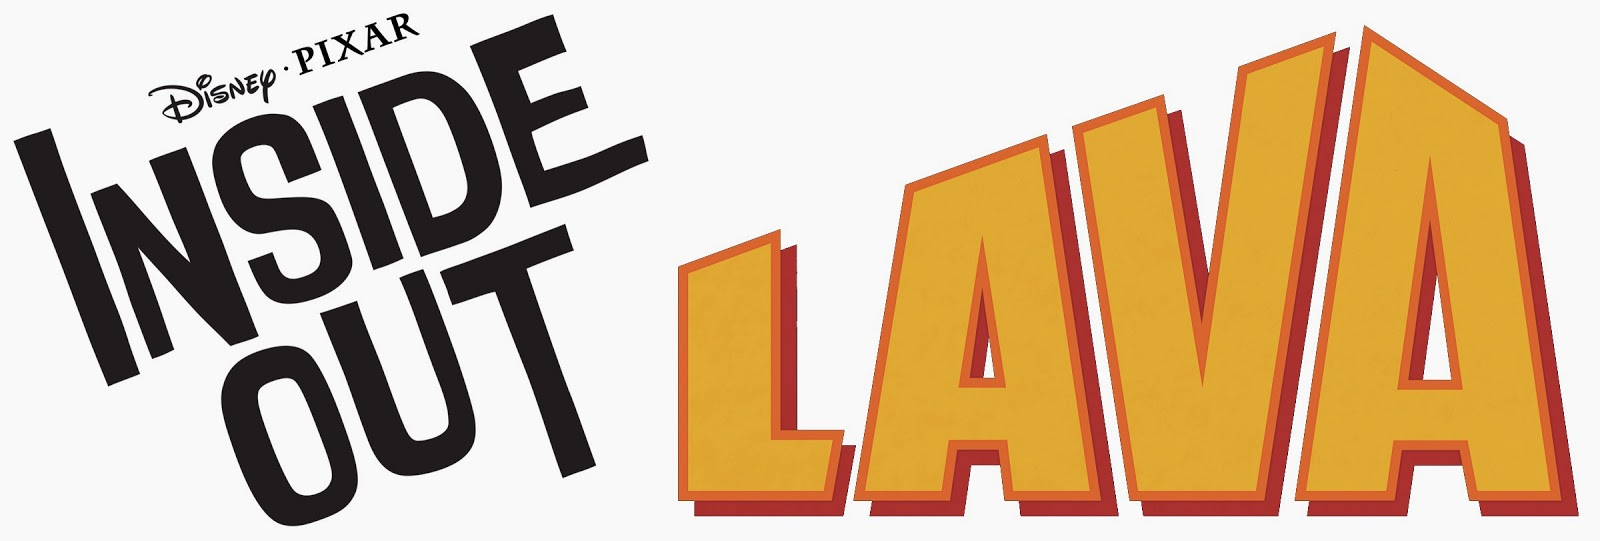 Pixar Inside Out and Lava Logo